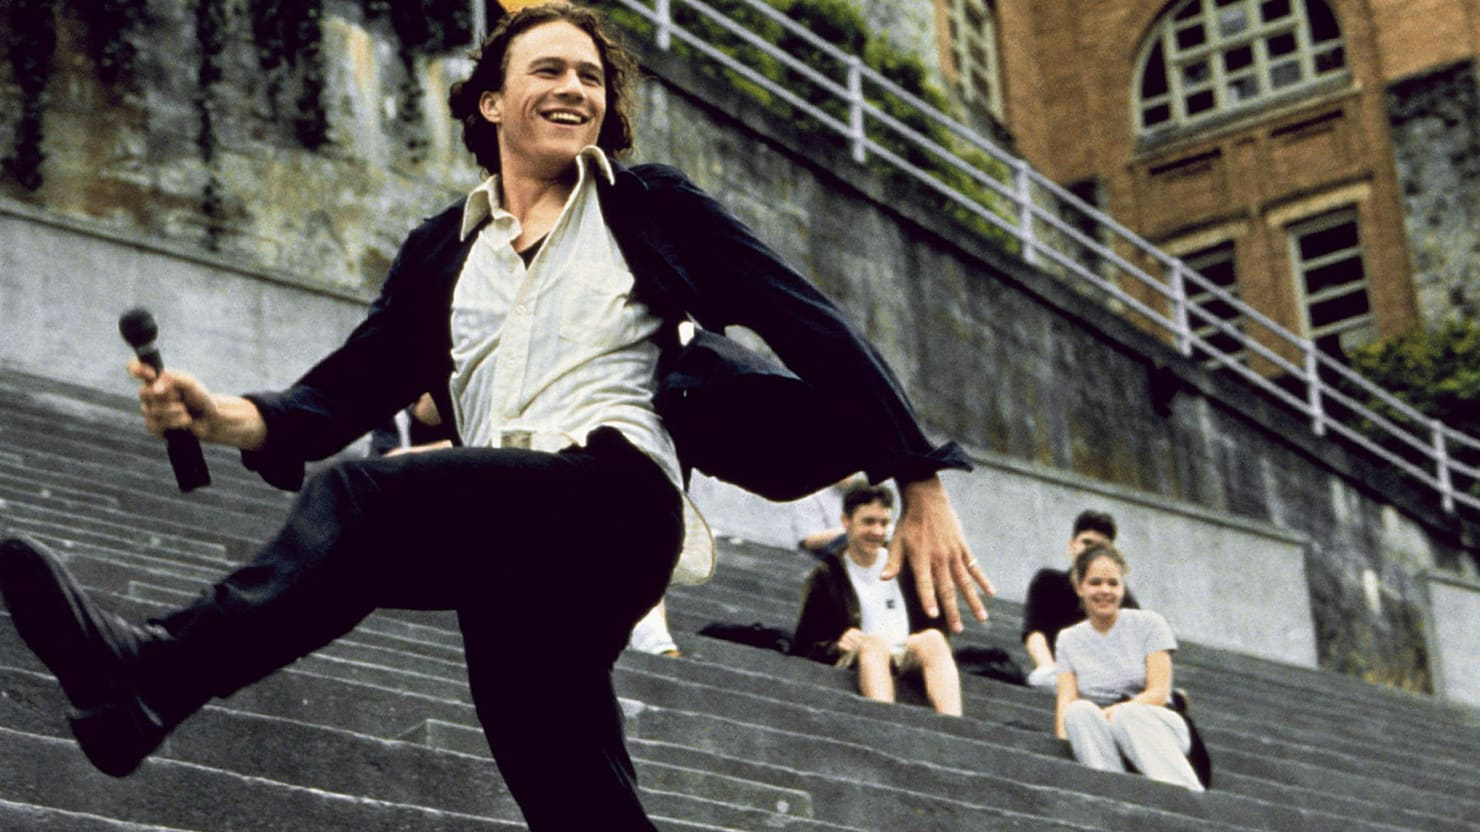 Movies Love Quotes 10 Things I Hate About You: Remembering '10 Things I Hate About You': The Movie That